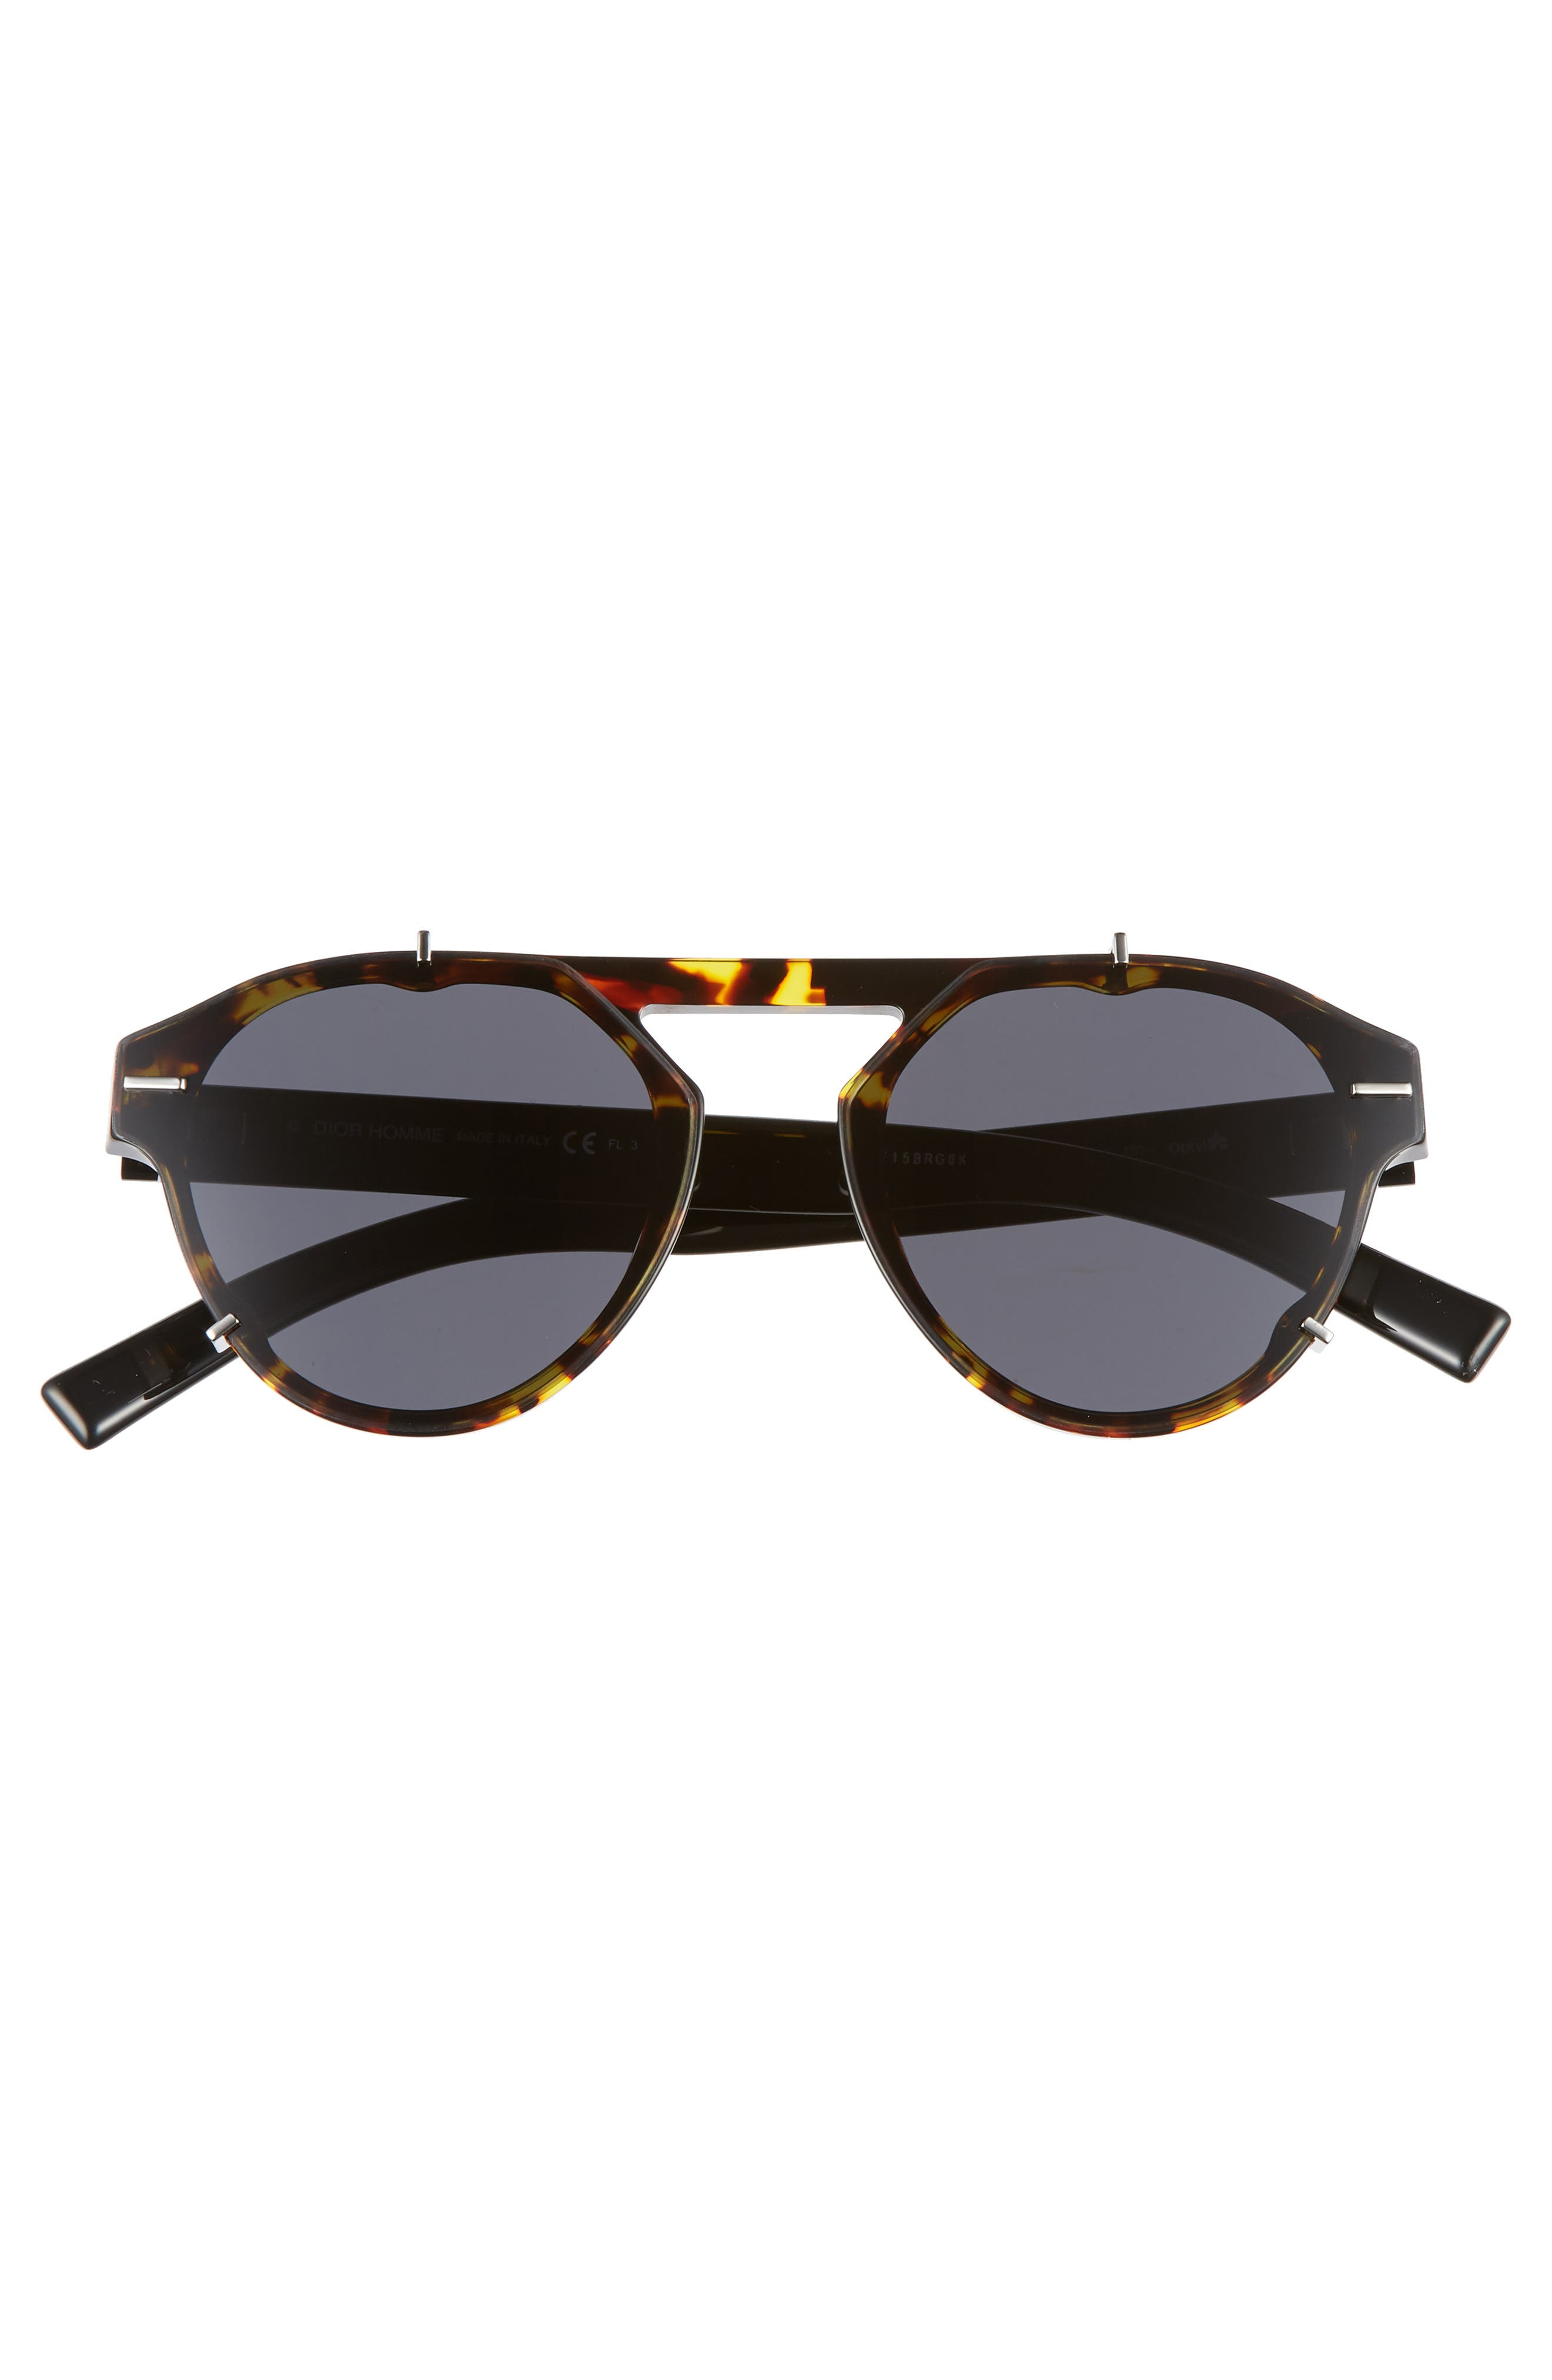 62mm Round Sunglasses,                             Alternate thumbnail 3, color,                             BLACK